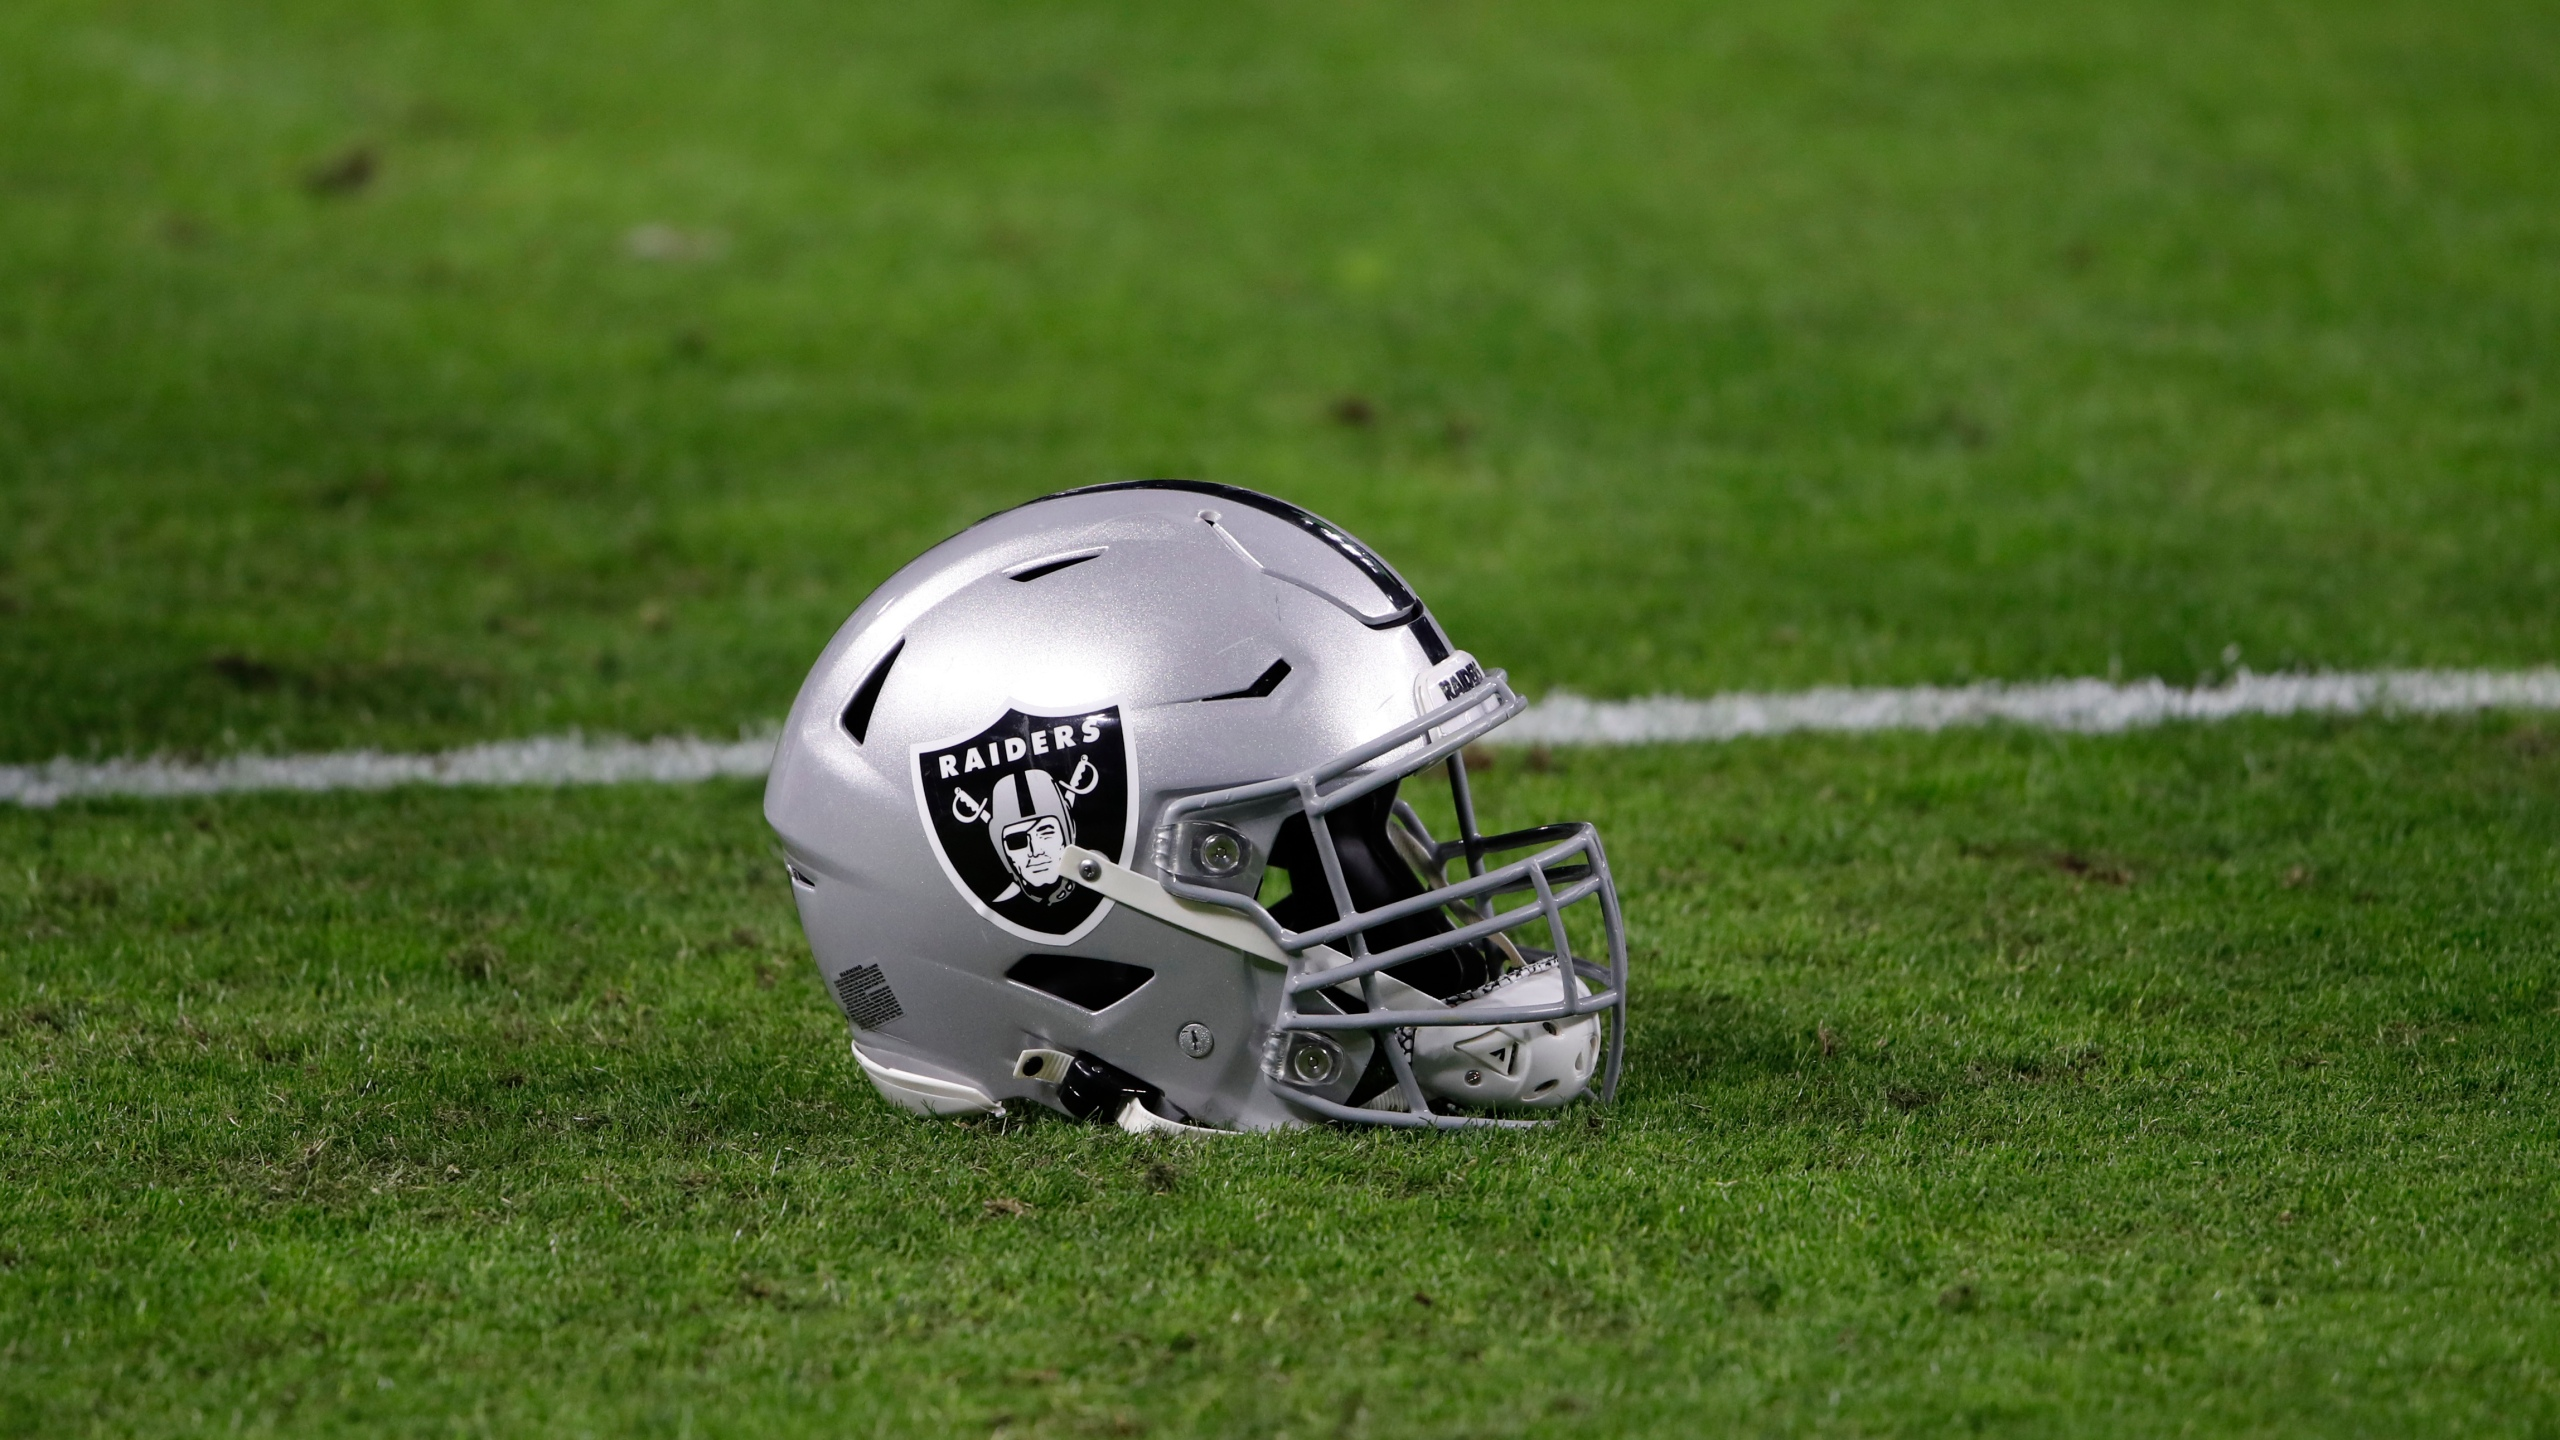 A Las Vegas Raiders helmet is seen before an NFL football game against the Miami Dolphins on Dec. 26, 2020, in Las Vegas. (AP Photo/Steve Marcus)